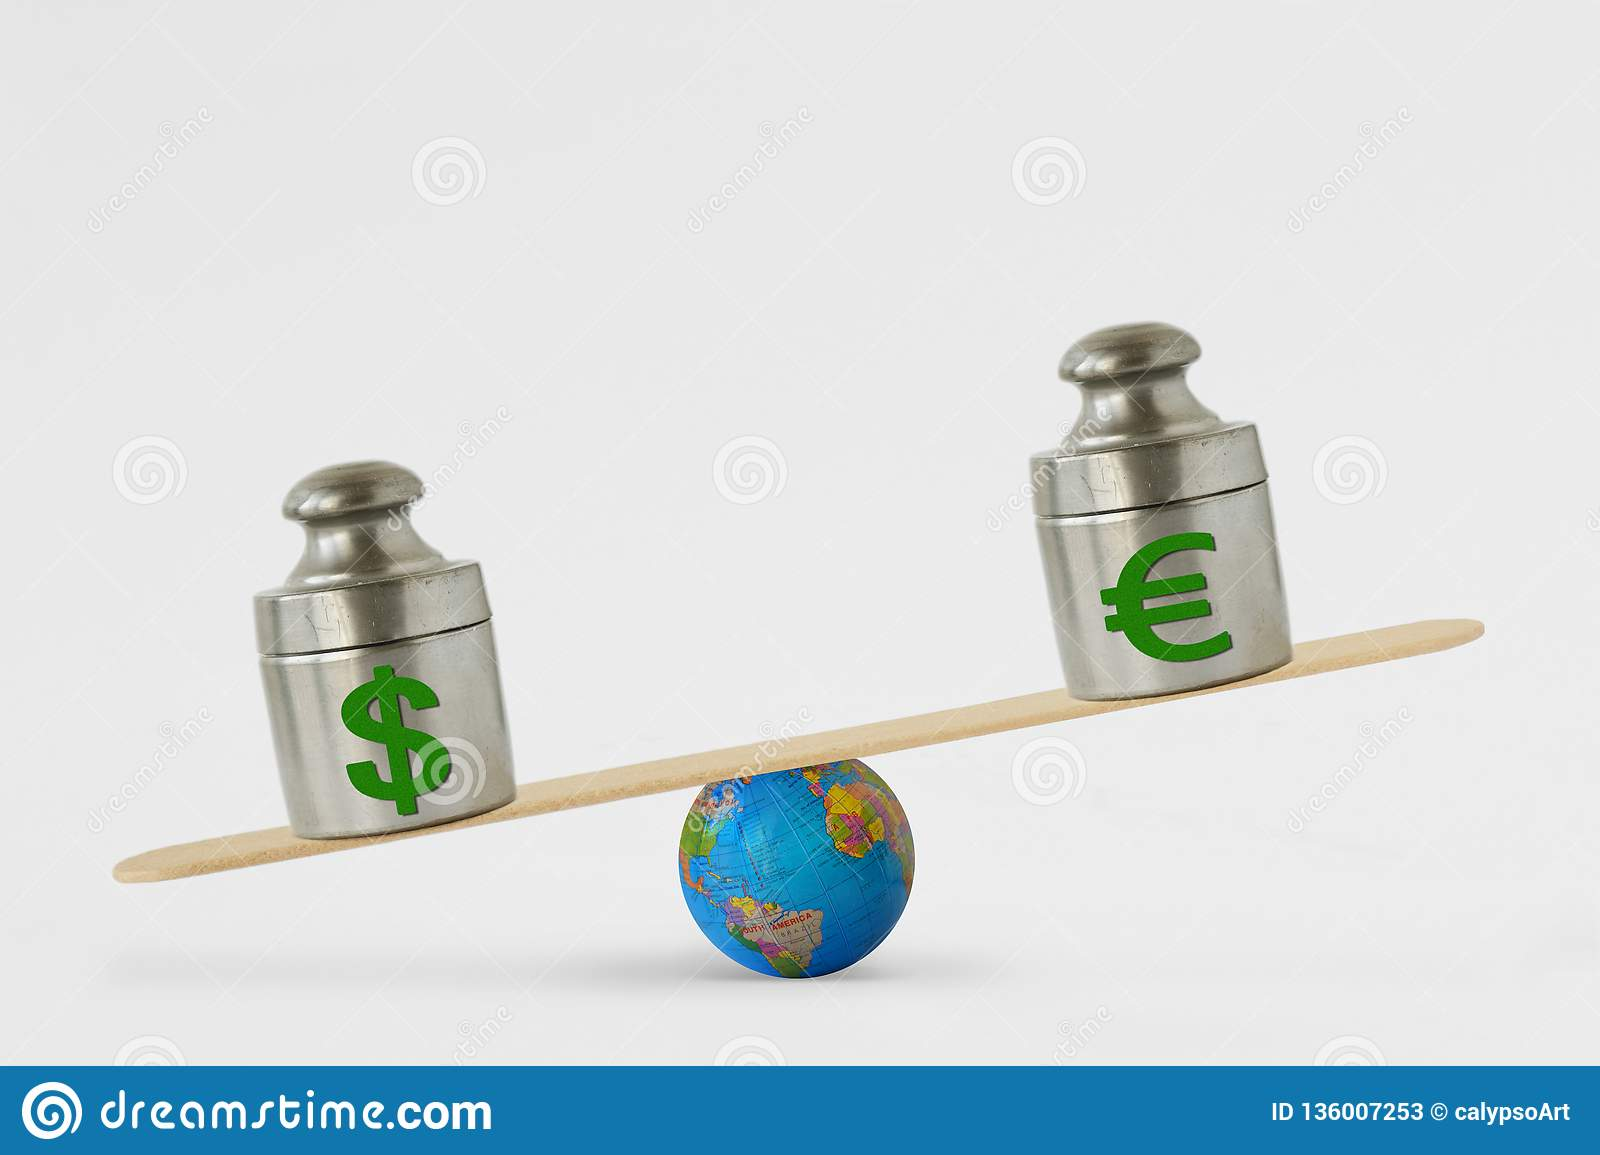 Dollar and euro symbols on balance scale - Concept of dollar dominance over euro in global markets